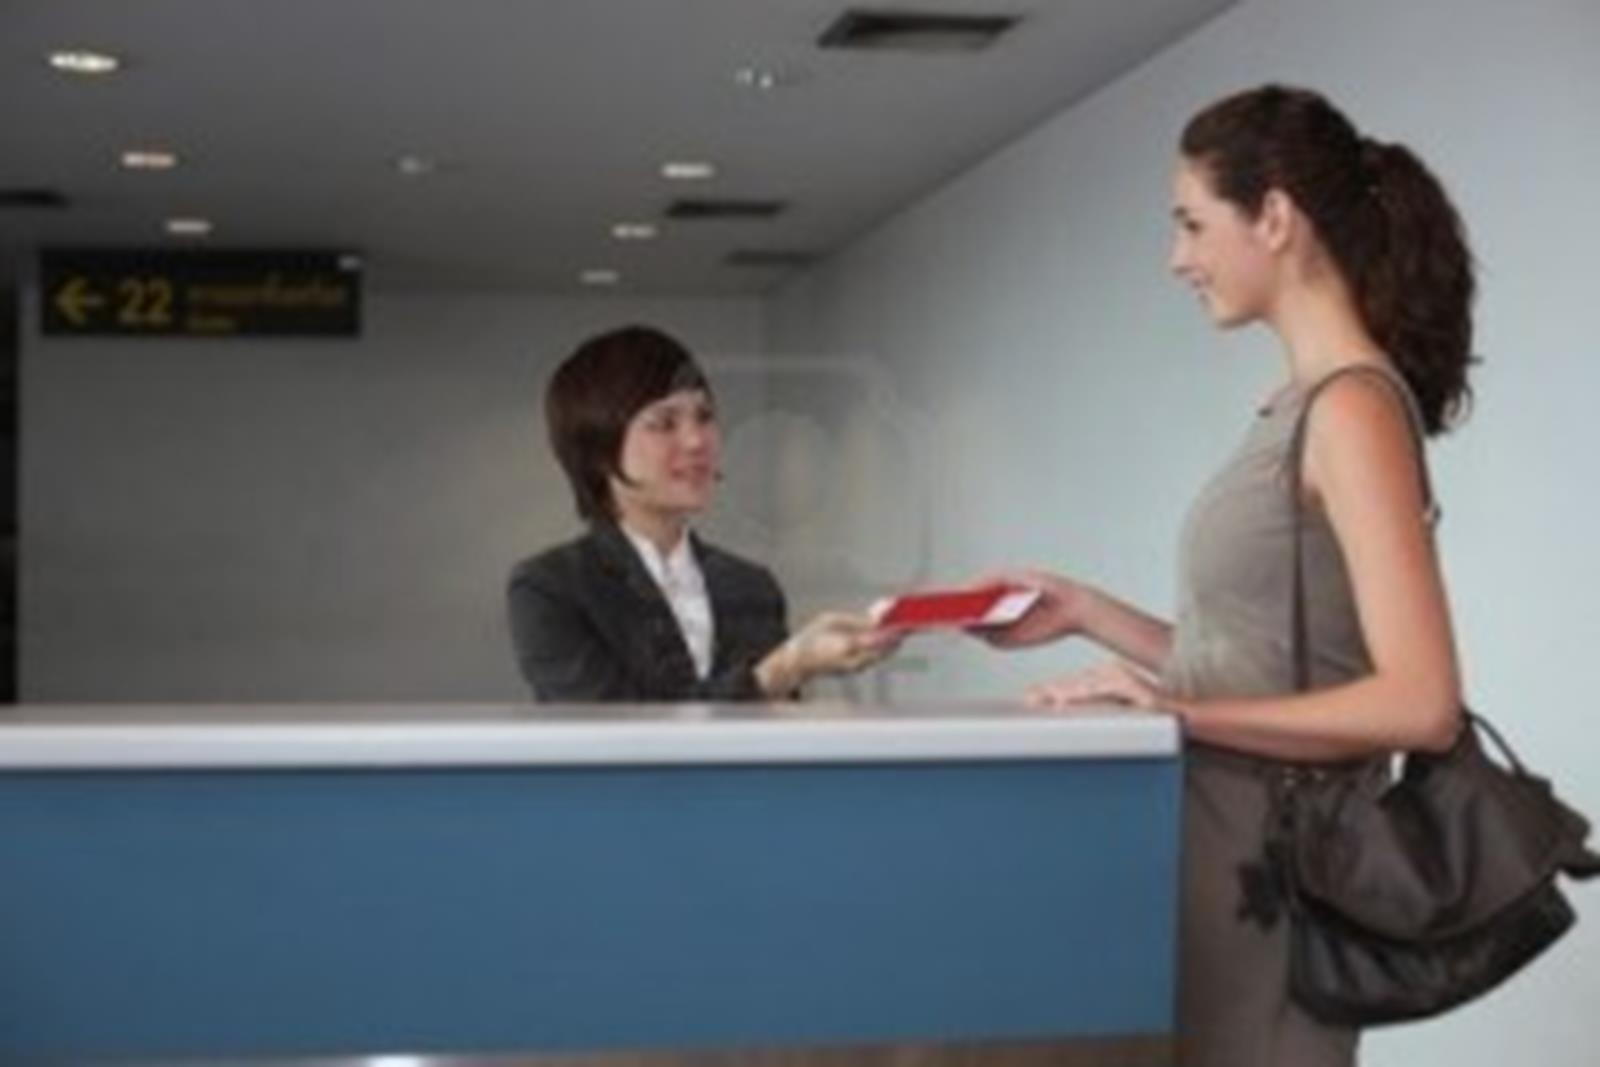 11543786-airline-check-in-attendant-returning-businesswoman-s-passport-at-the-airport-check-in-counter